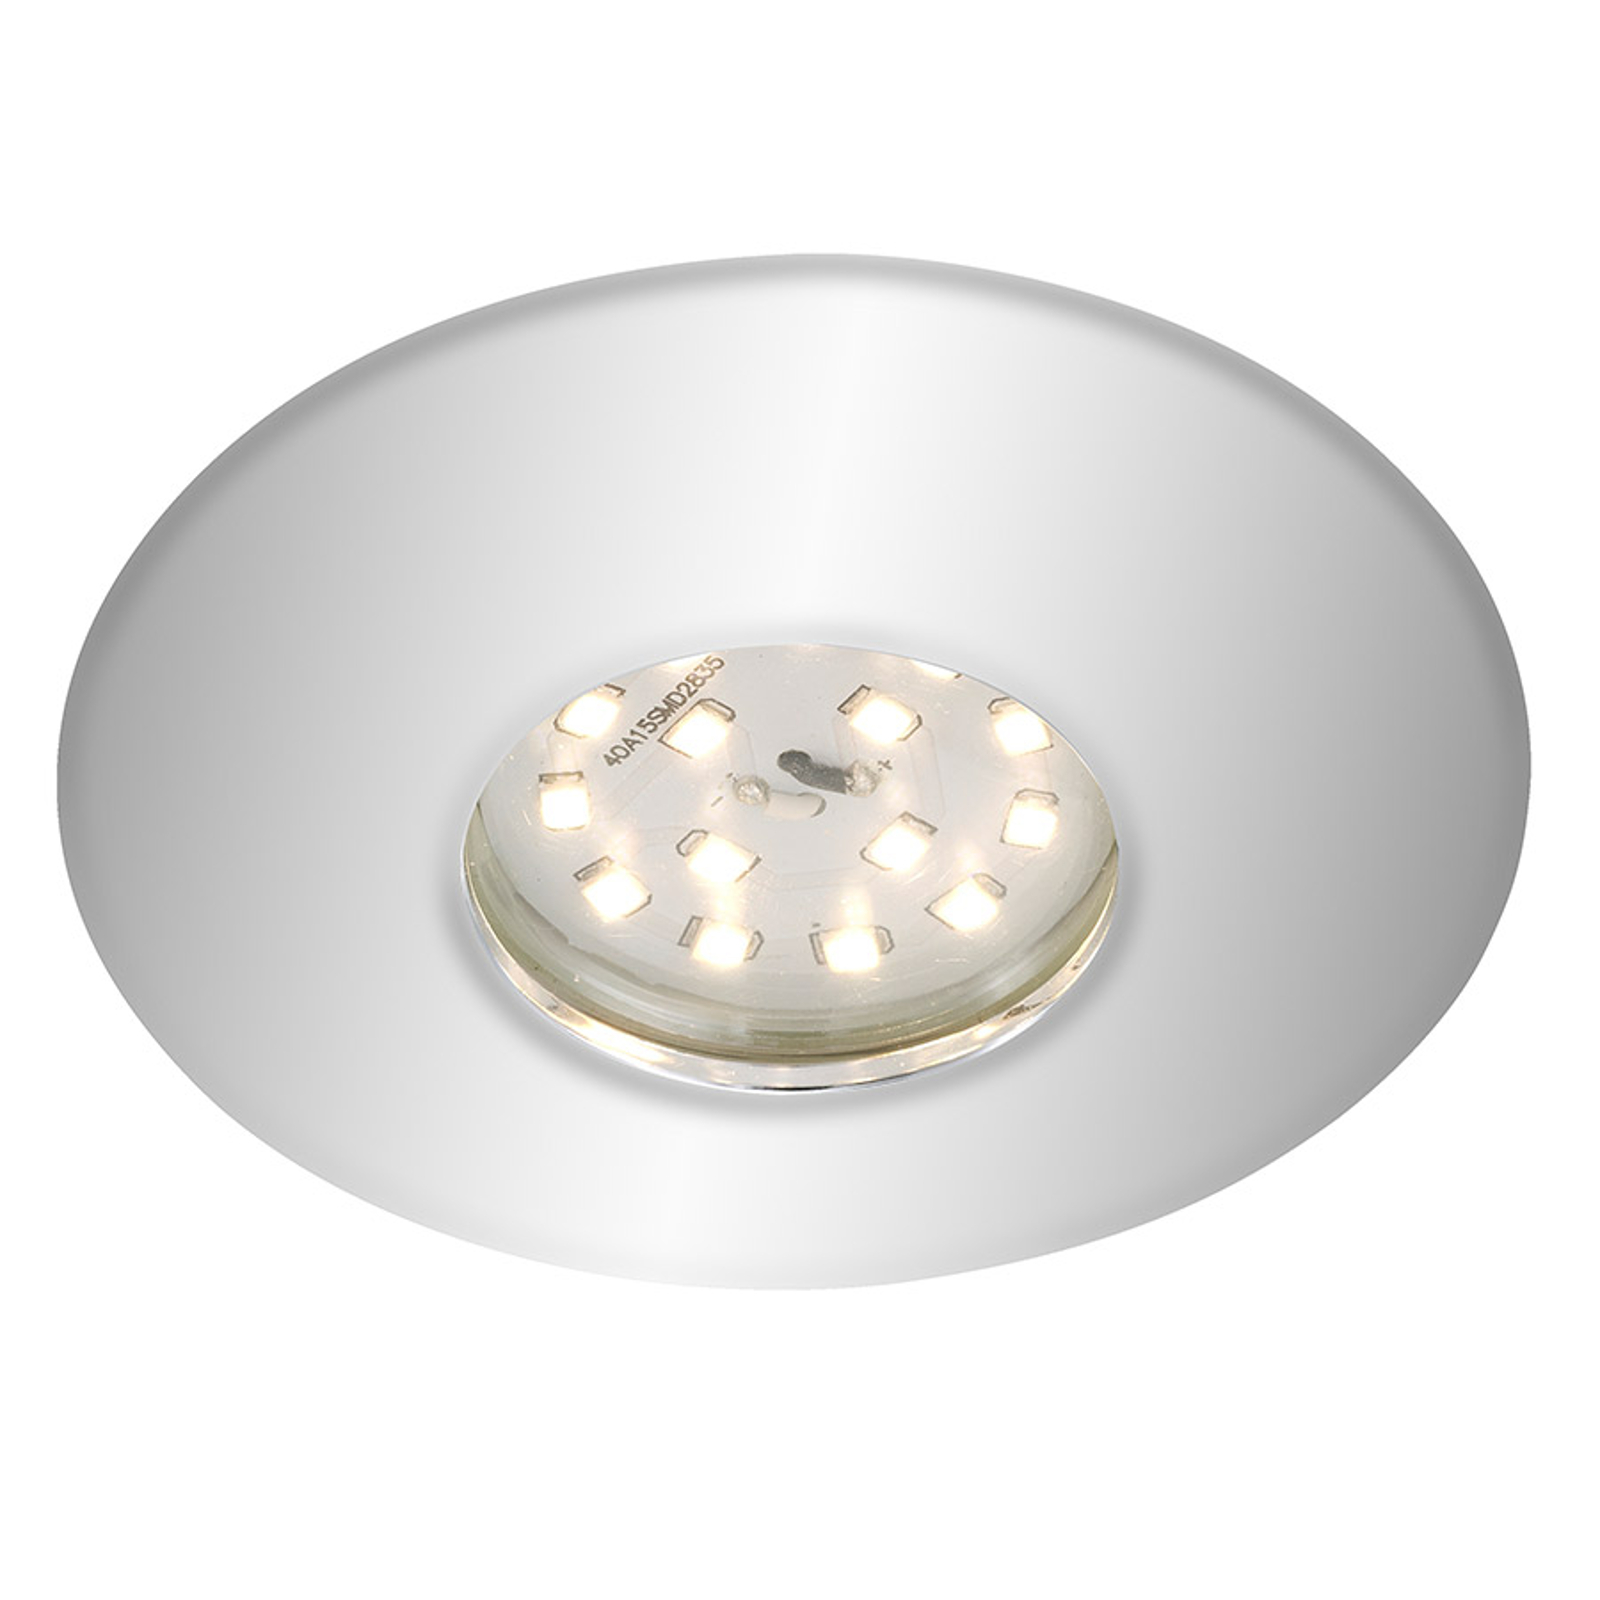 Spot encastré LED chromé Shower, IP65